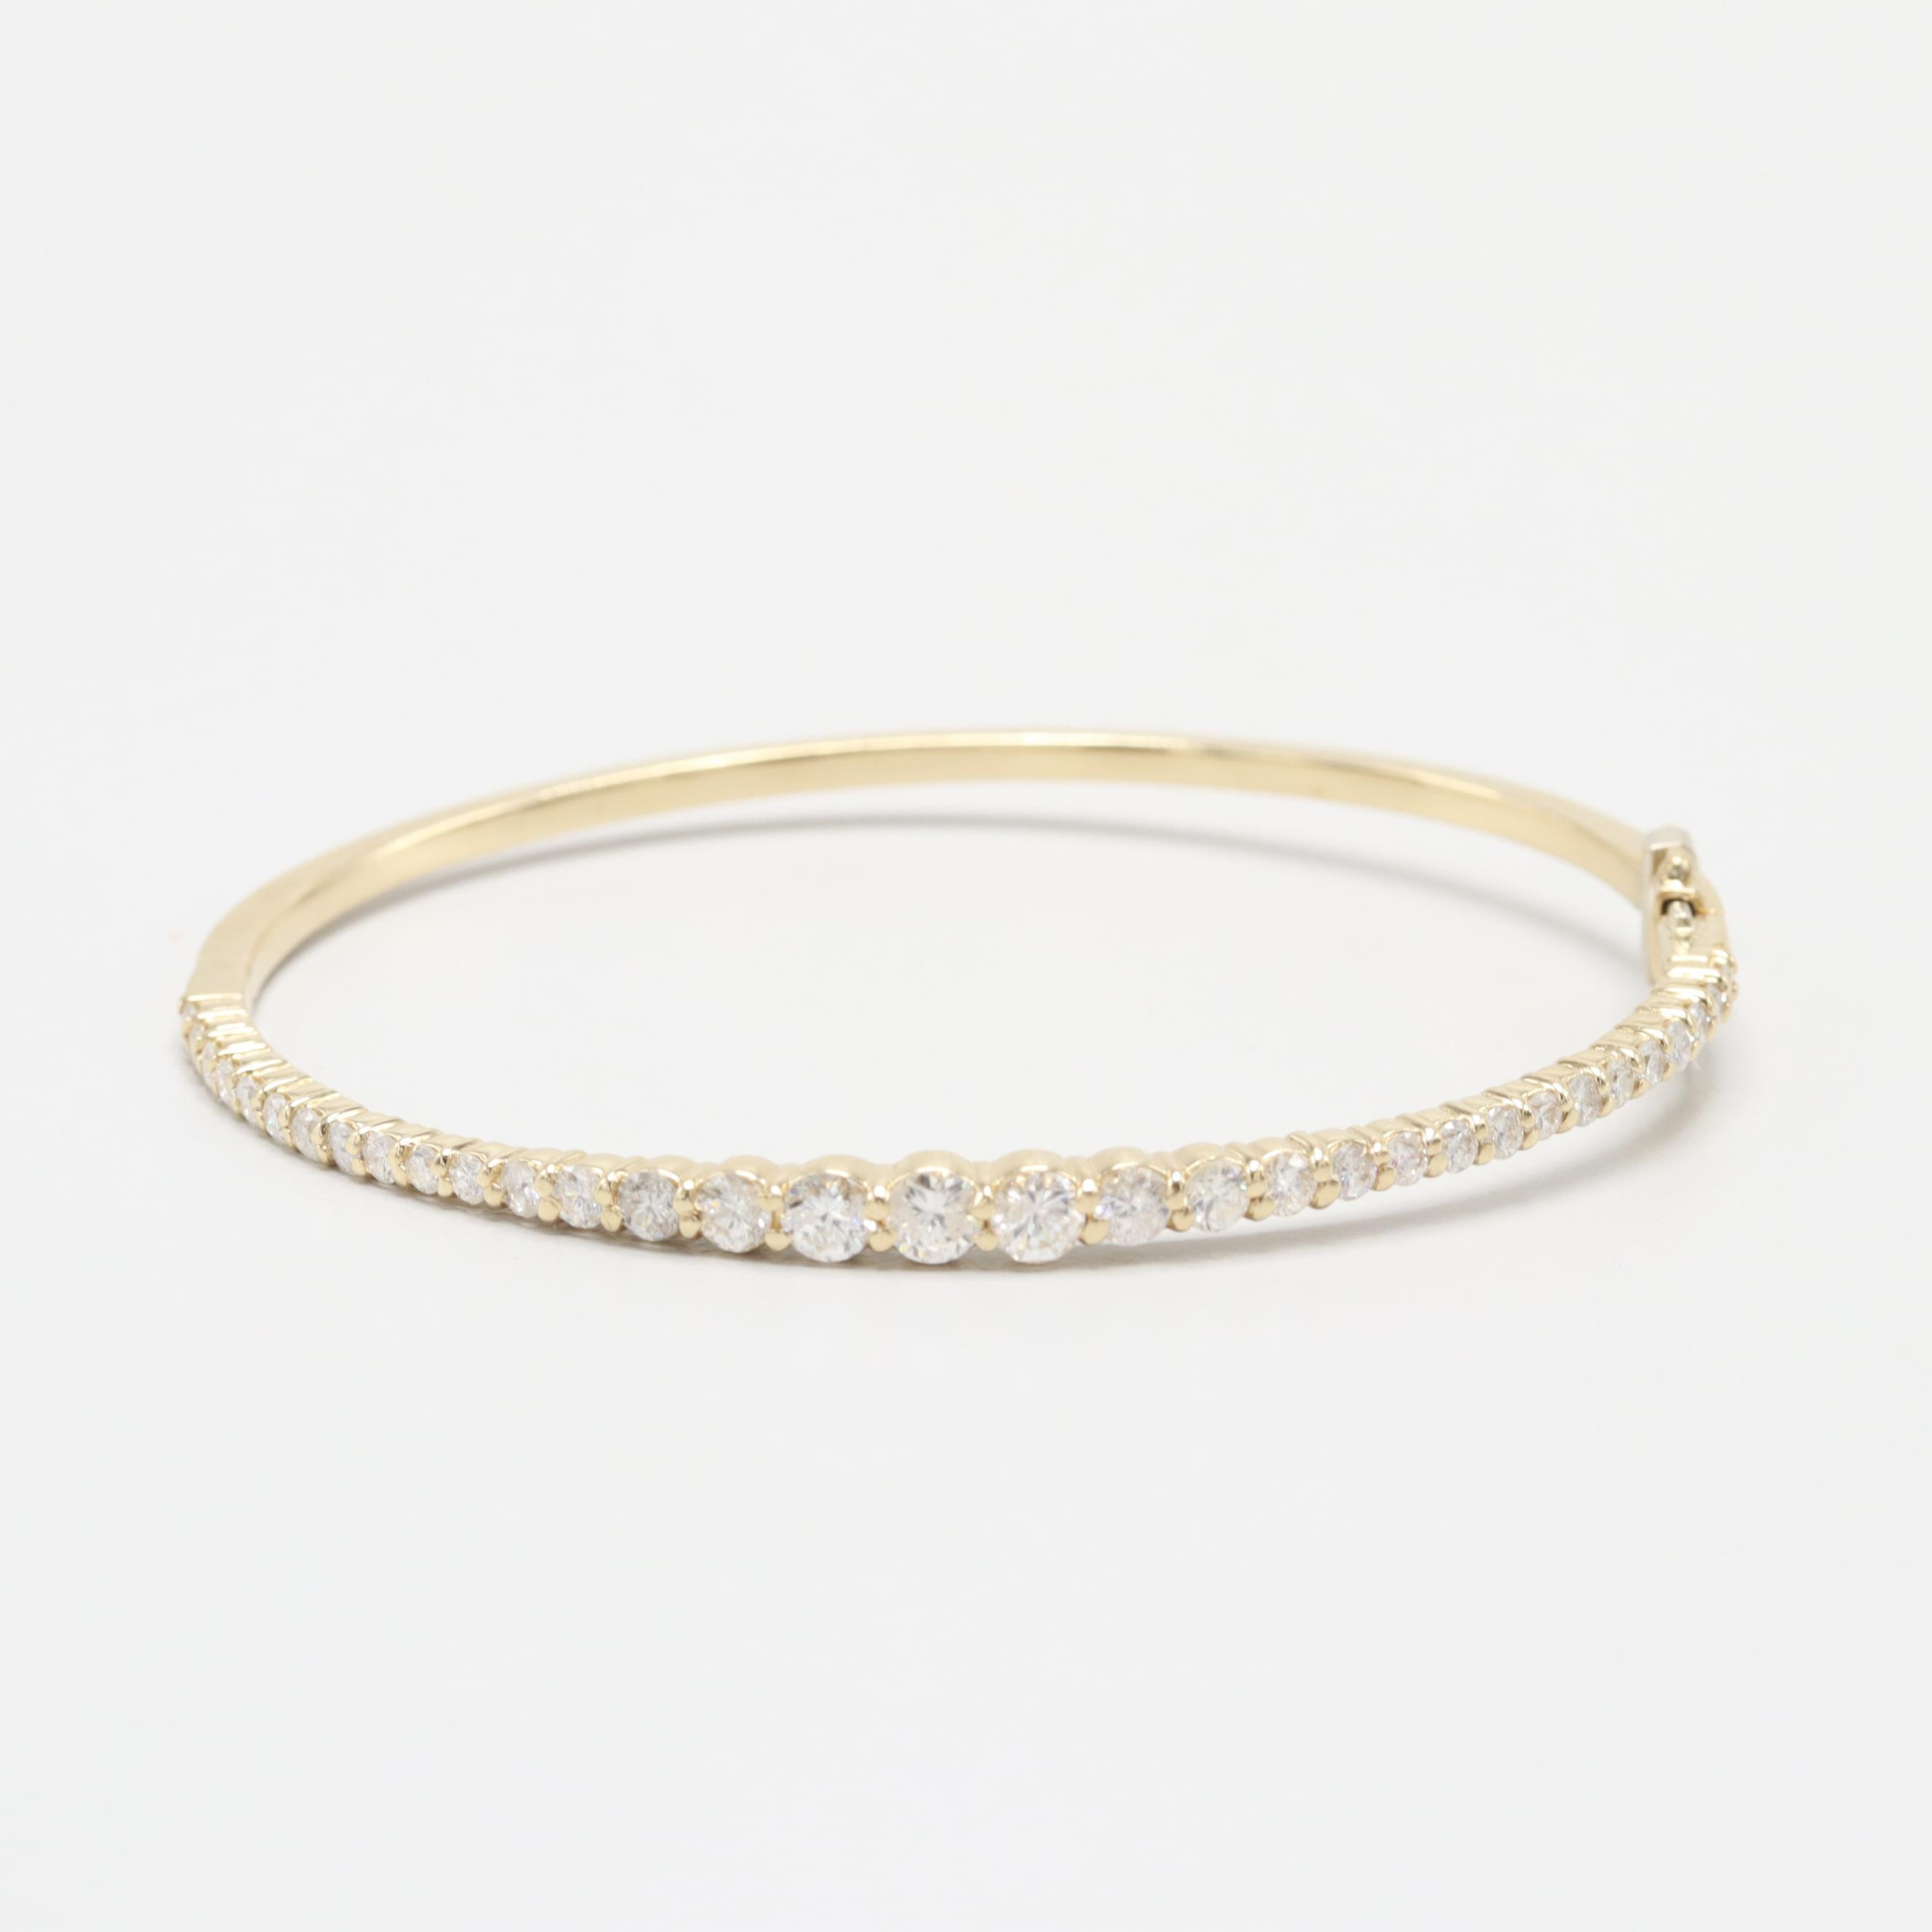 14K Yellow Gold 1.96 CTW Diamond Bangle Bracelet